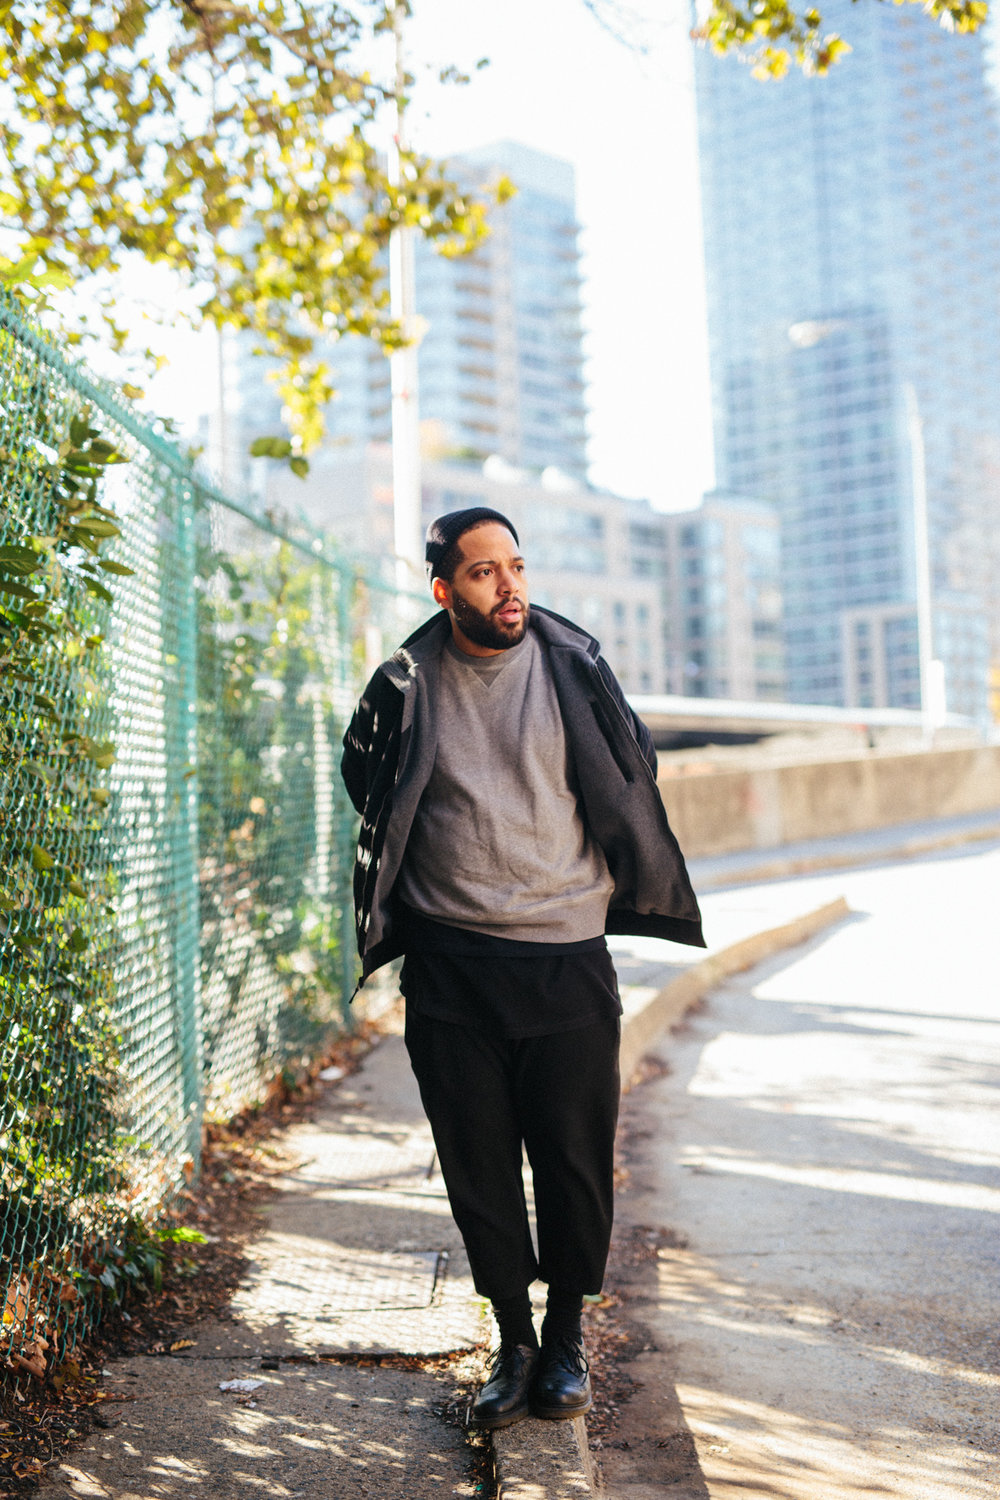 Doing Things on Your Own Terms with New York Lifestyle and Fashion Photographer Justin Bridges - LATEST INTERVIEW